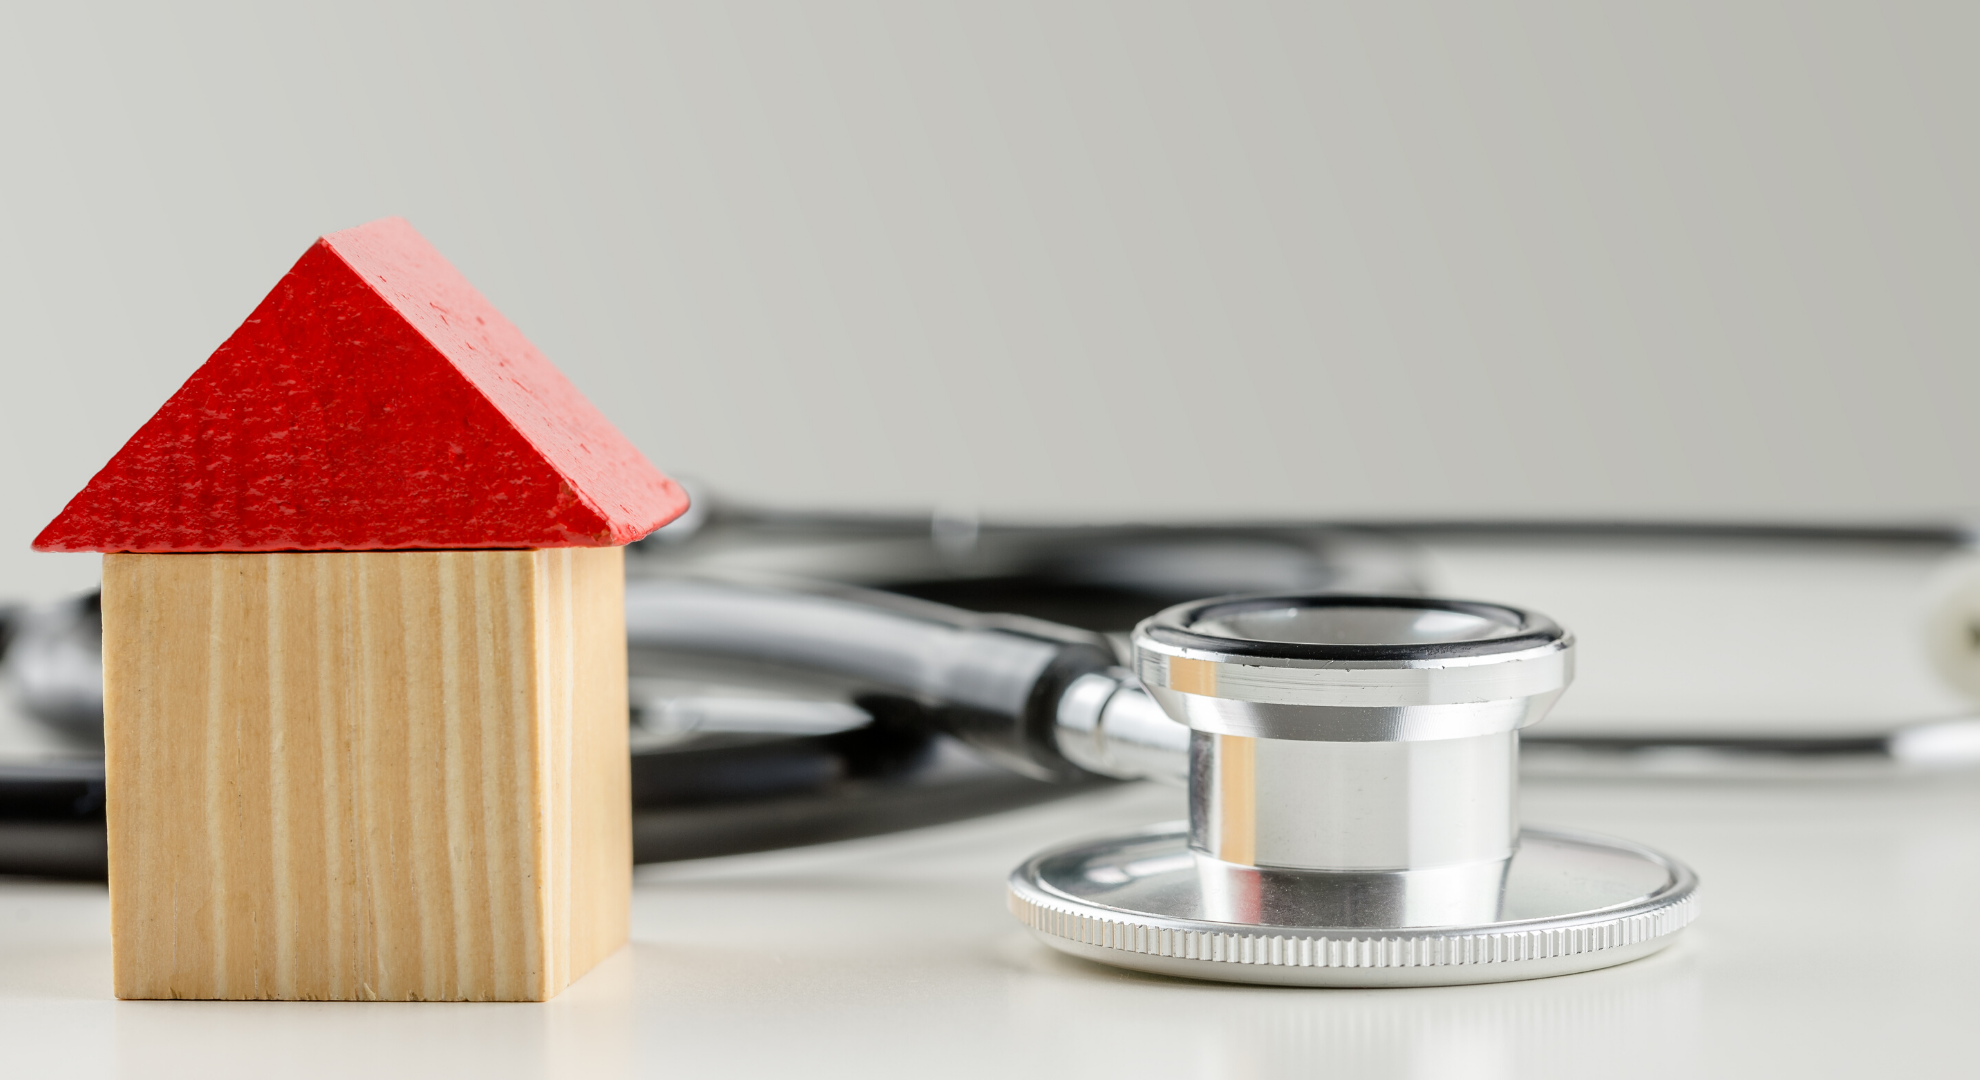 Wooden toy house next to a stethoscope. Conceptual image of solution to the real estate market crisis.